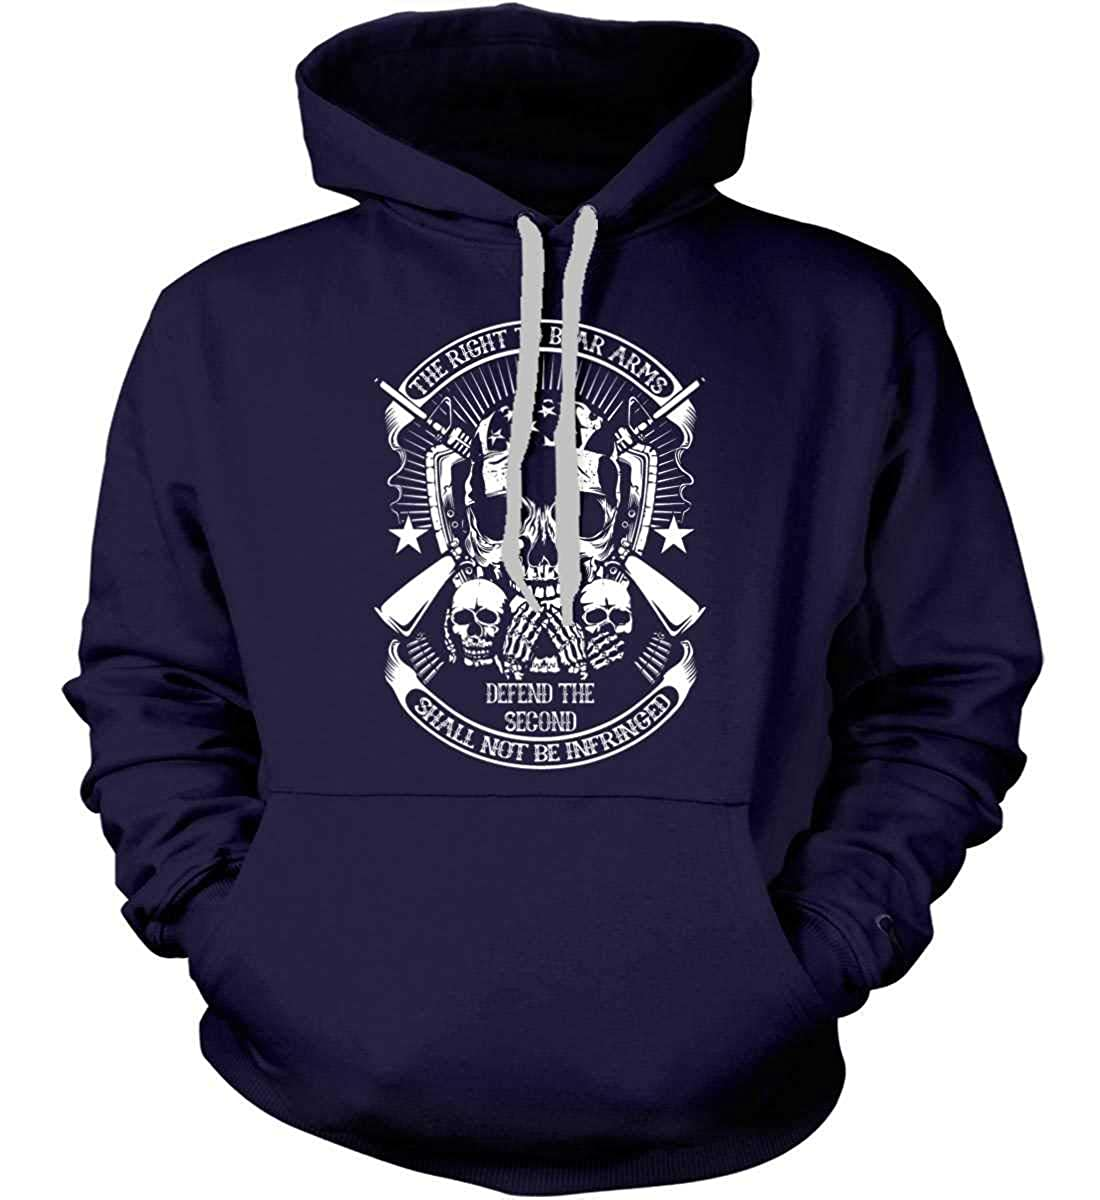 Defend The Second Sweatshirt The Right to Bear Arms Sons Of Liberty Hoodie